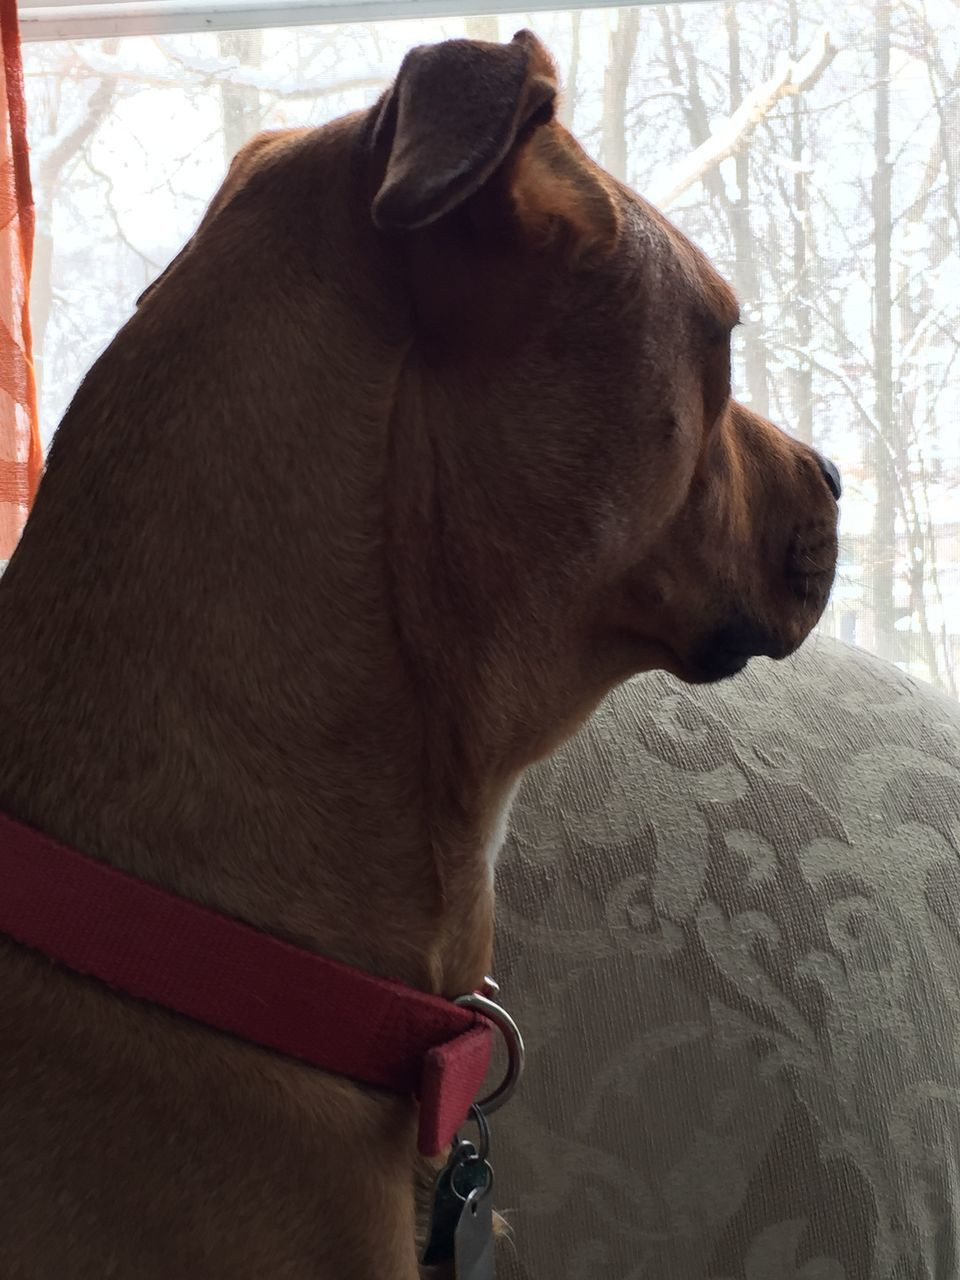 domestic animals, mammal, animal themes, one animal, dog, pets, indoors, no people, day, close-up